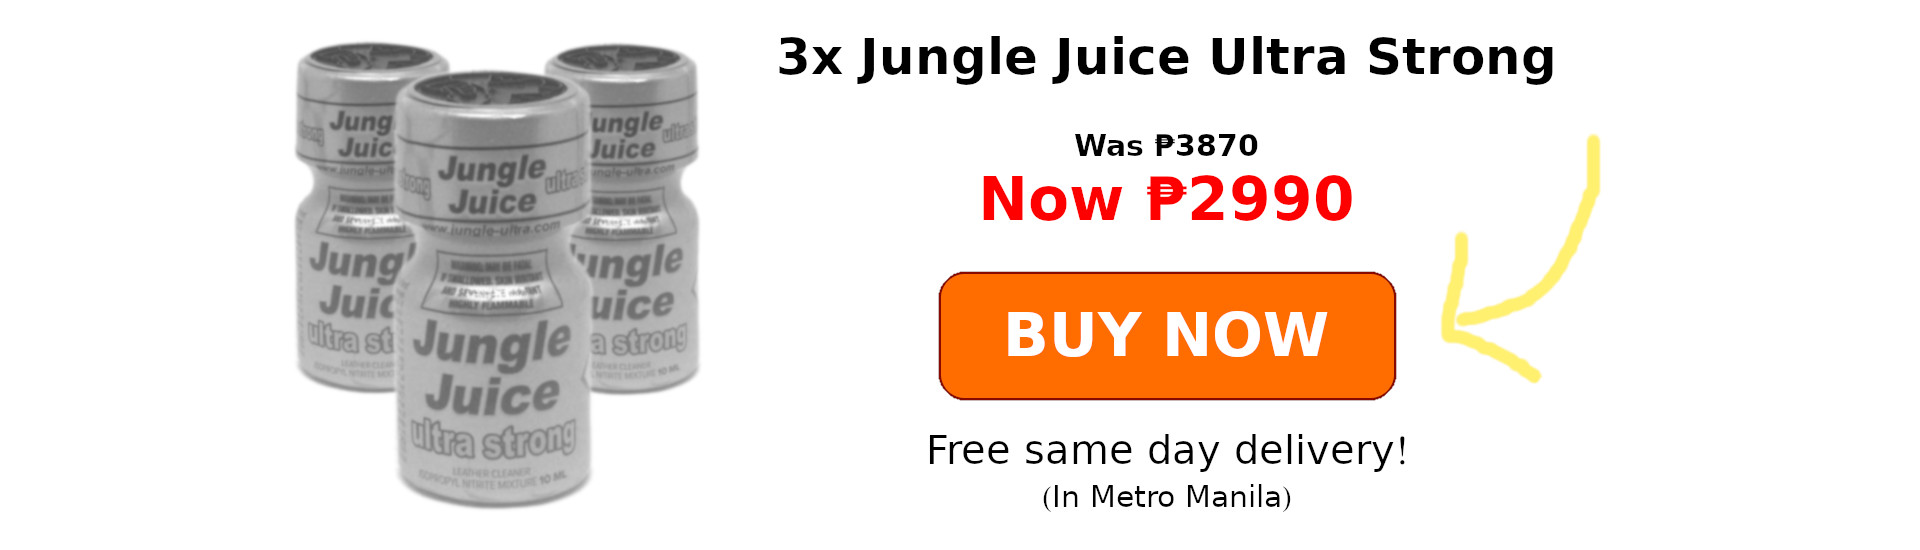 3x Jungle Juice Ultra Strong Promo